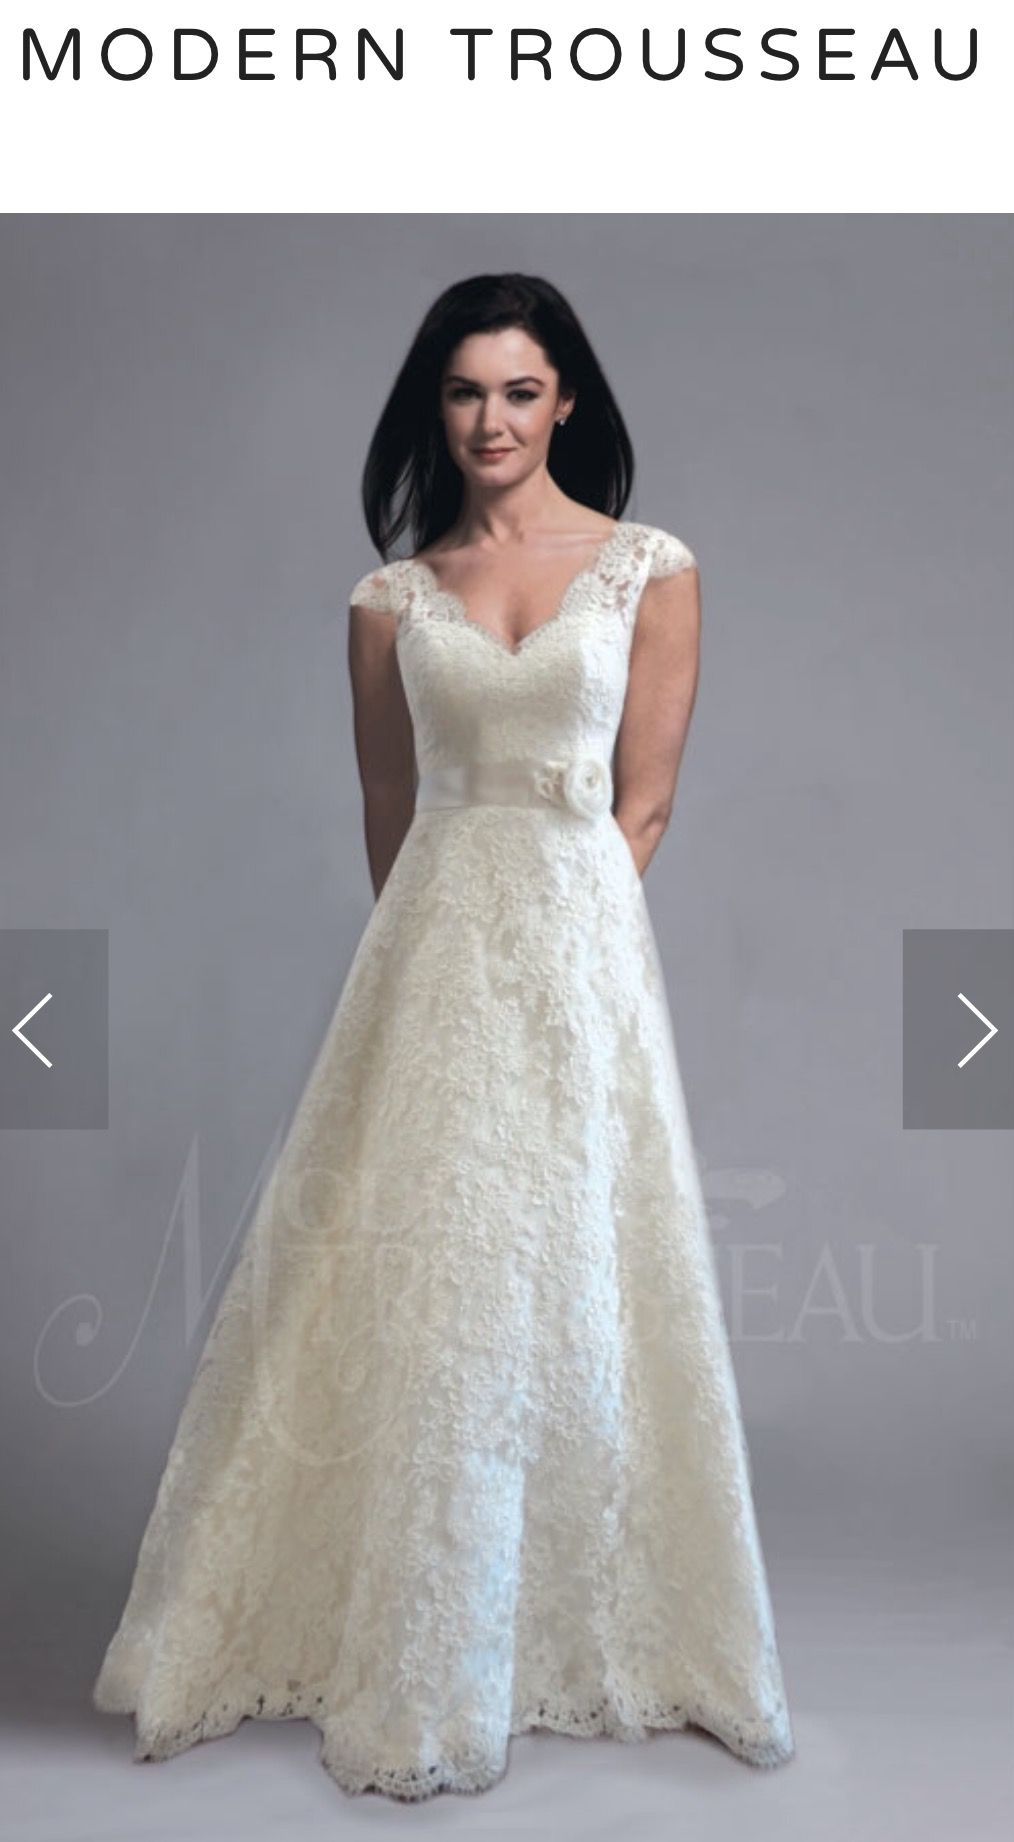 Neckline and lace sleeves obviously not the rose belt at kinsley